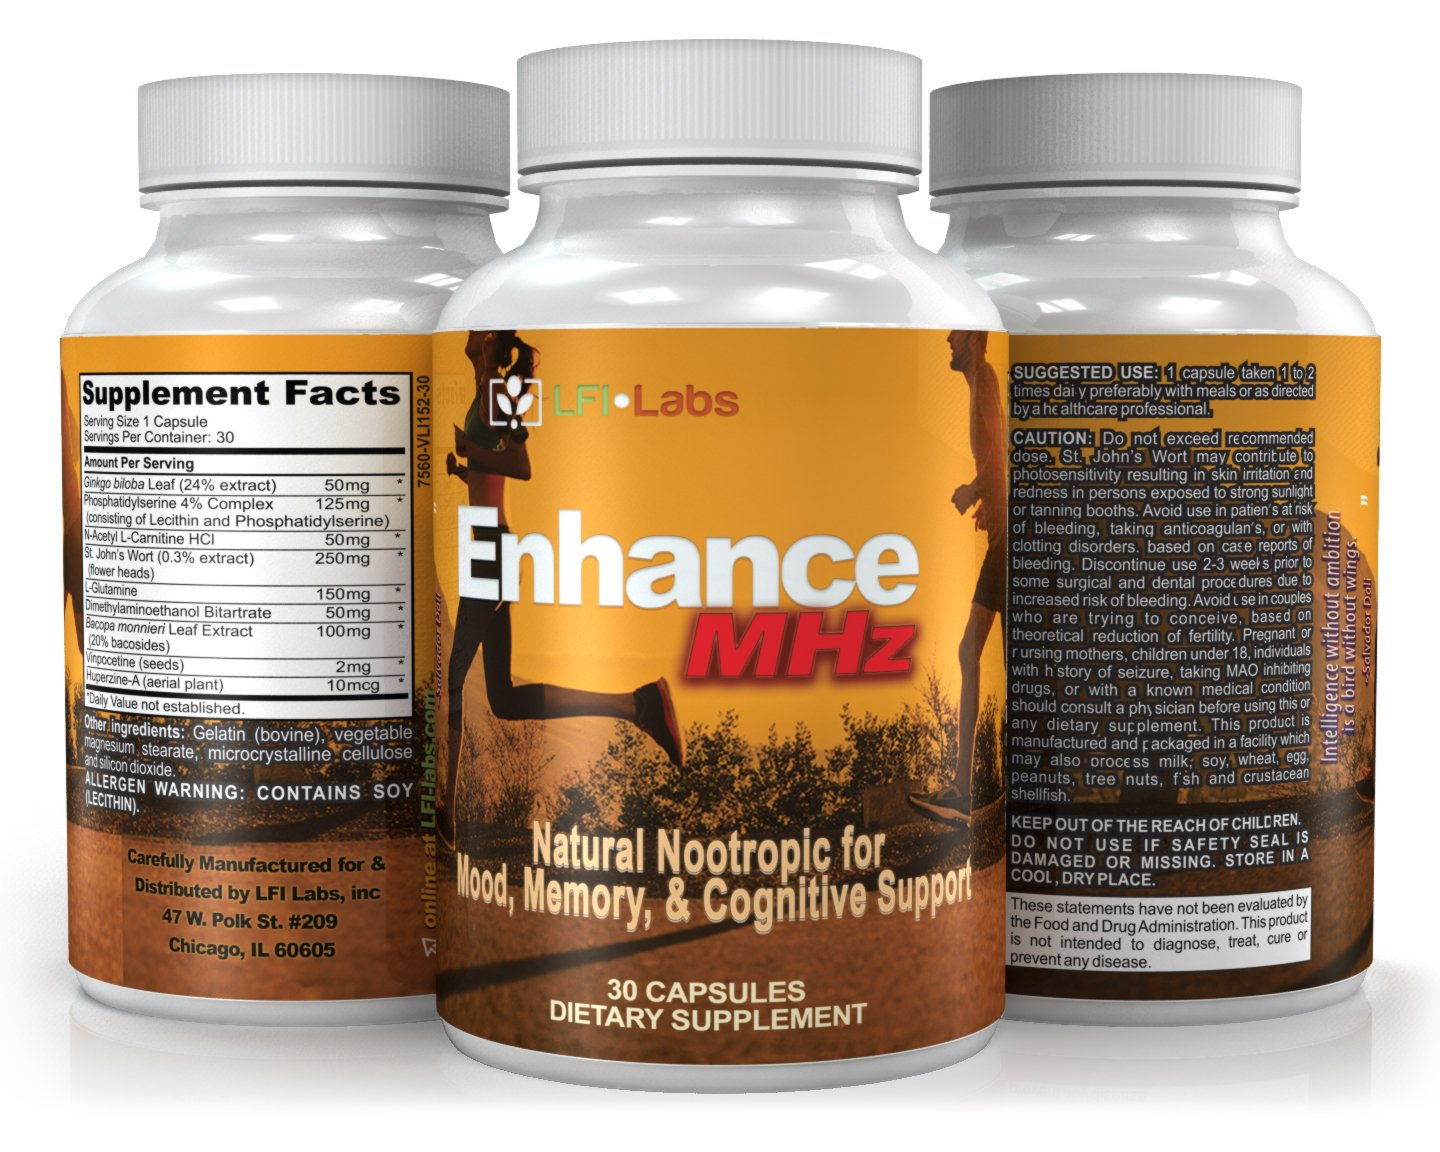 com lfi enhance mhz your daily nootropic designed to com lfi enhance mhz your daily nootropic designed to enhance your cognitive performance boost memory focus clarity and creativity while also